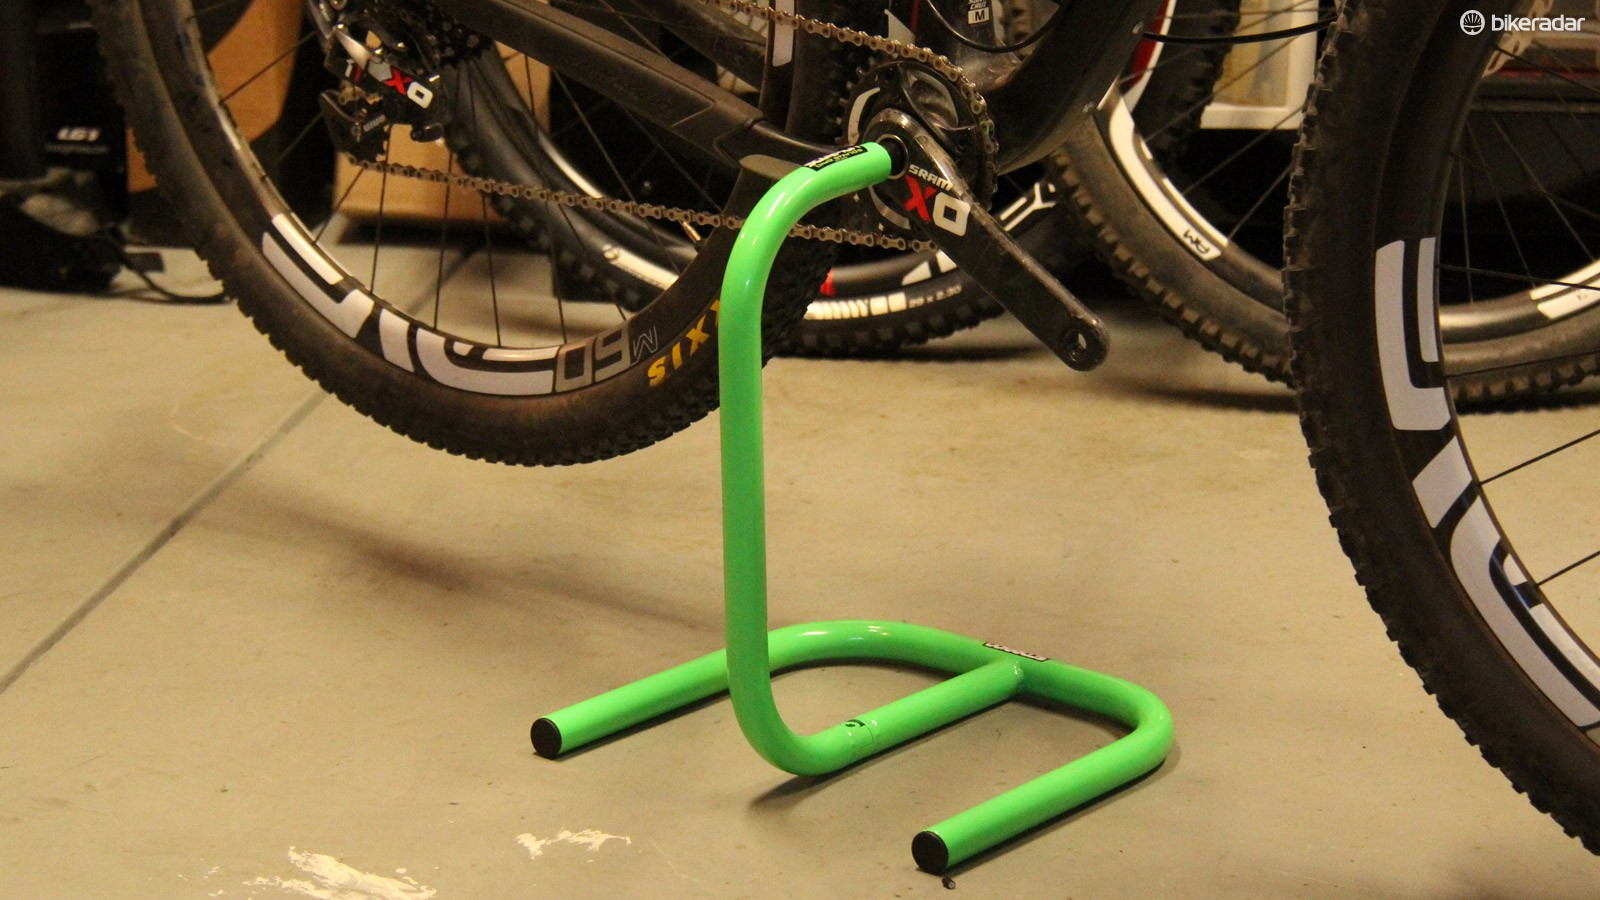 Scorpion's moto-inspired stands will work with any bicycle, provided it is equipped with a crankset that has a spindle